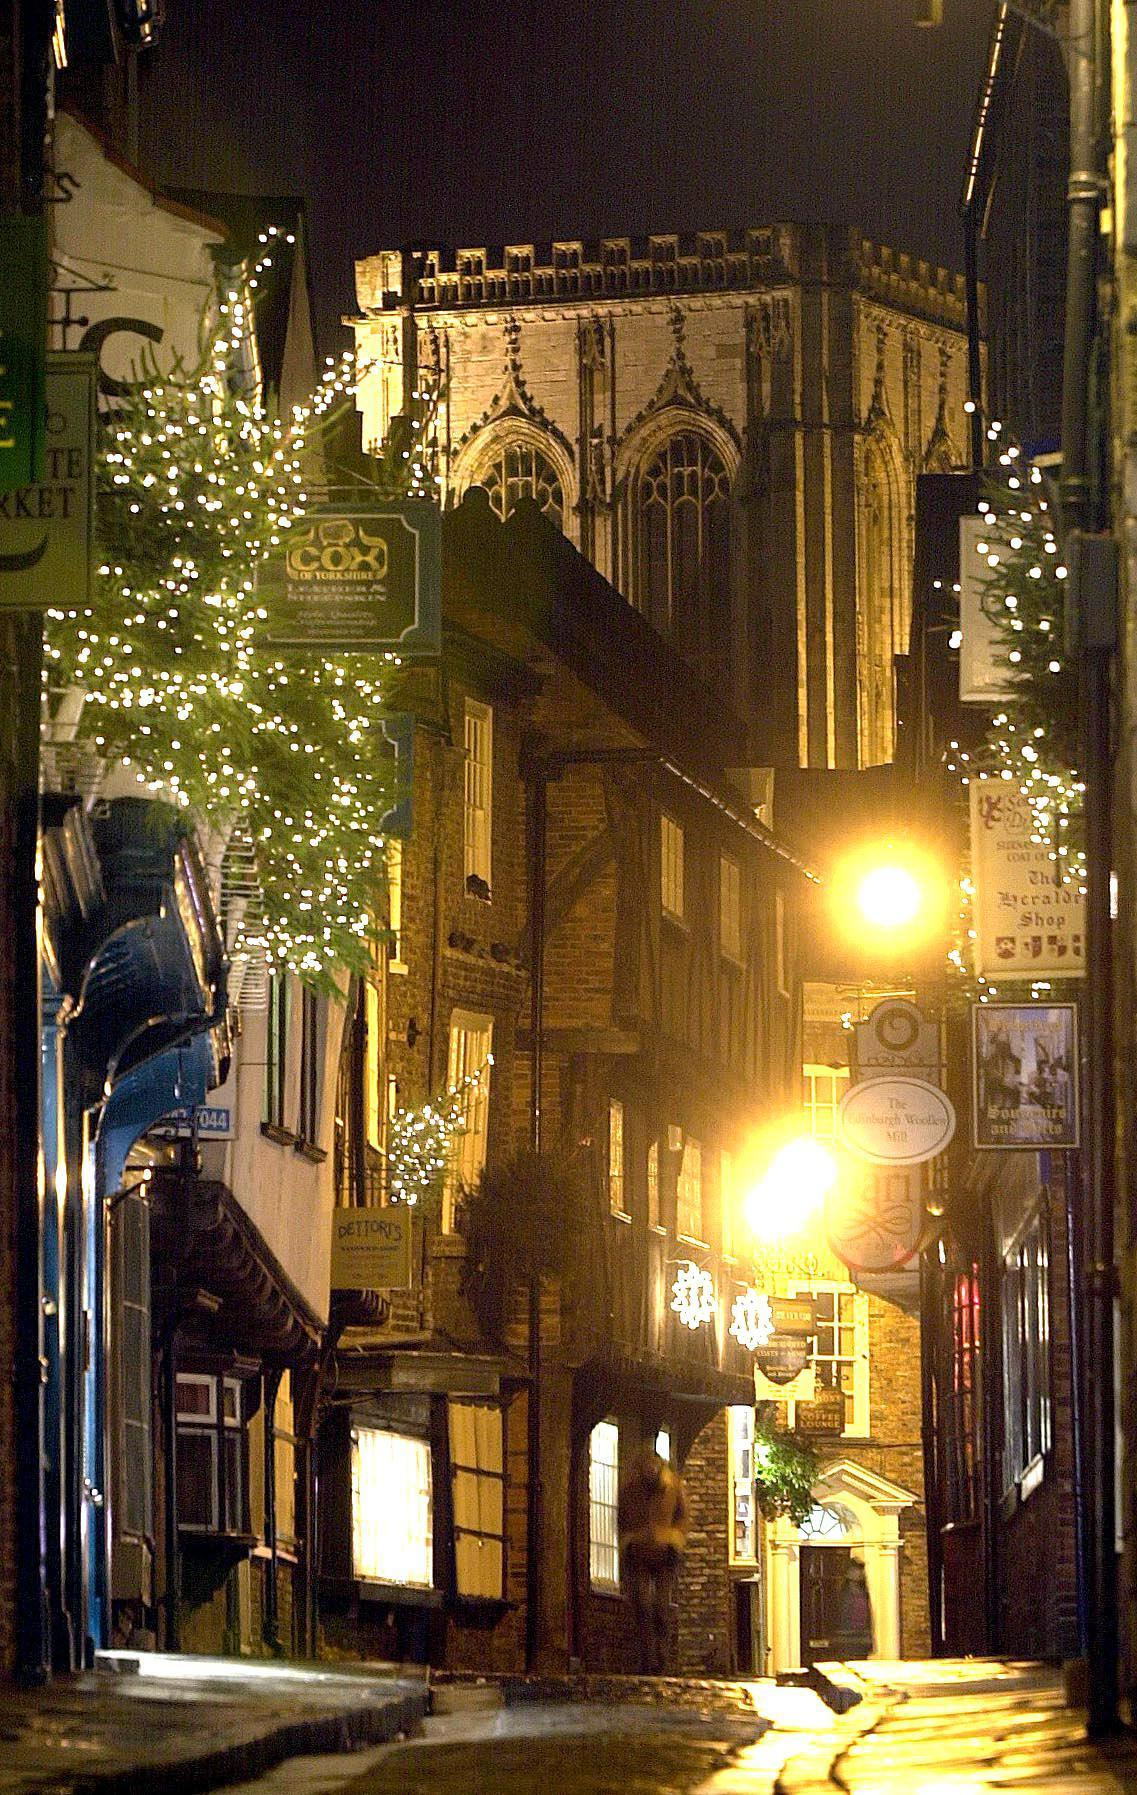 york weather. It\u0027s Set To Be A White Christmas In One York Street This Year - Regardless Of The Weather